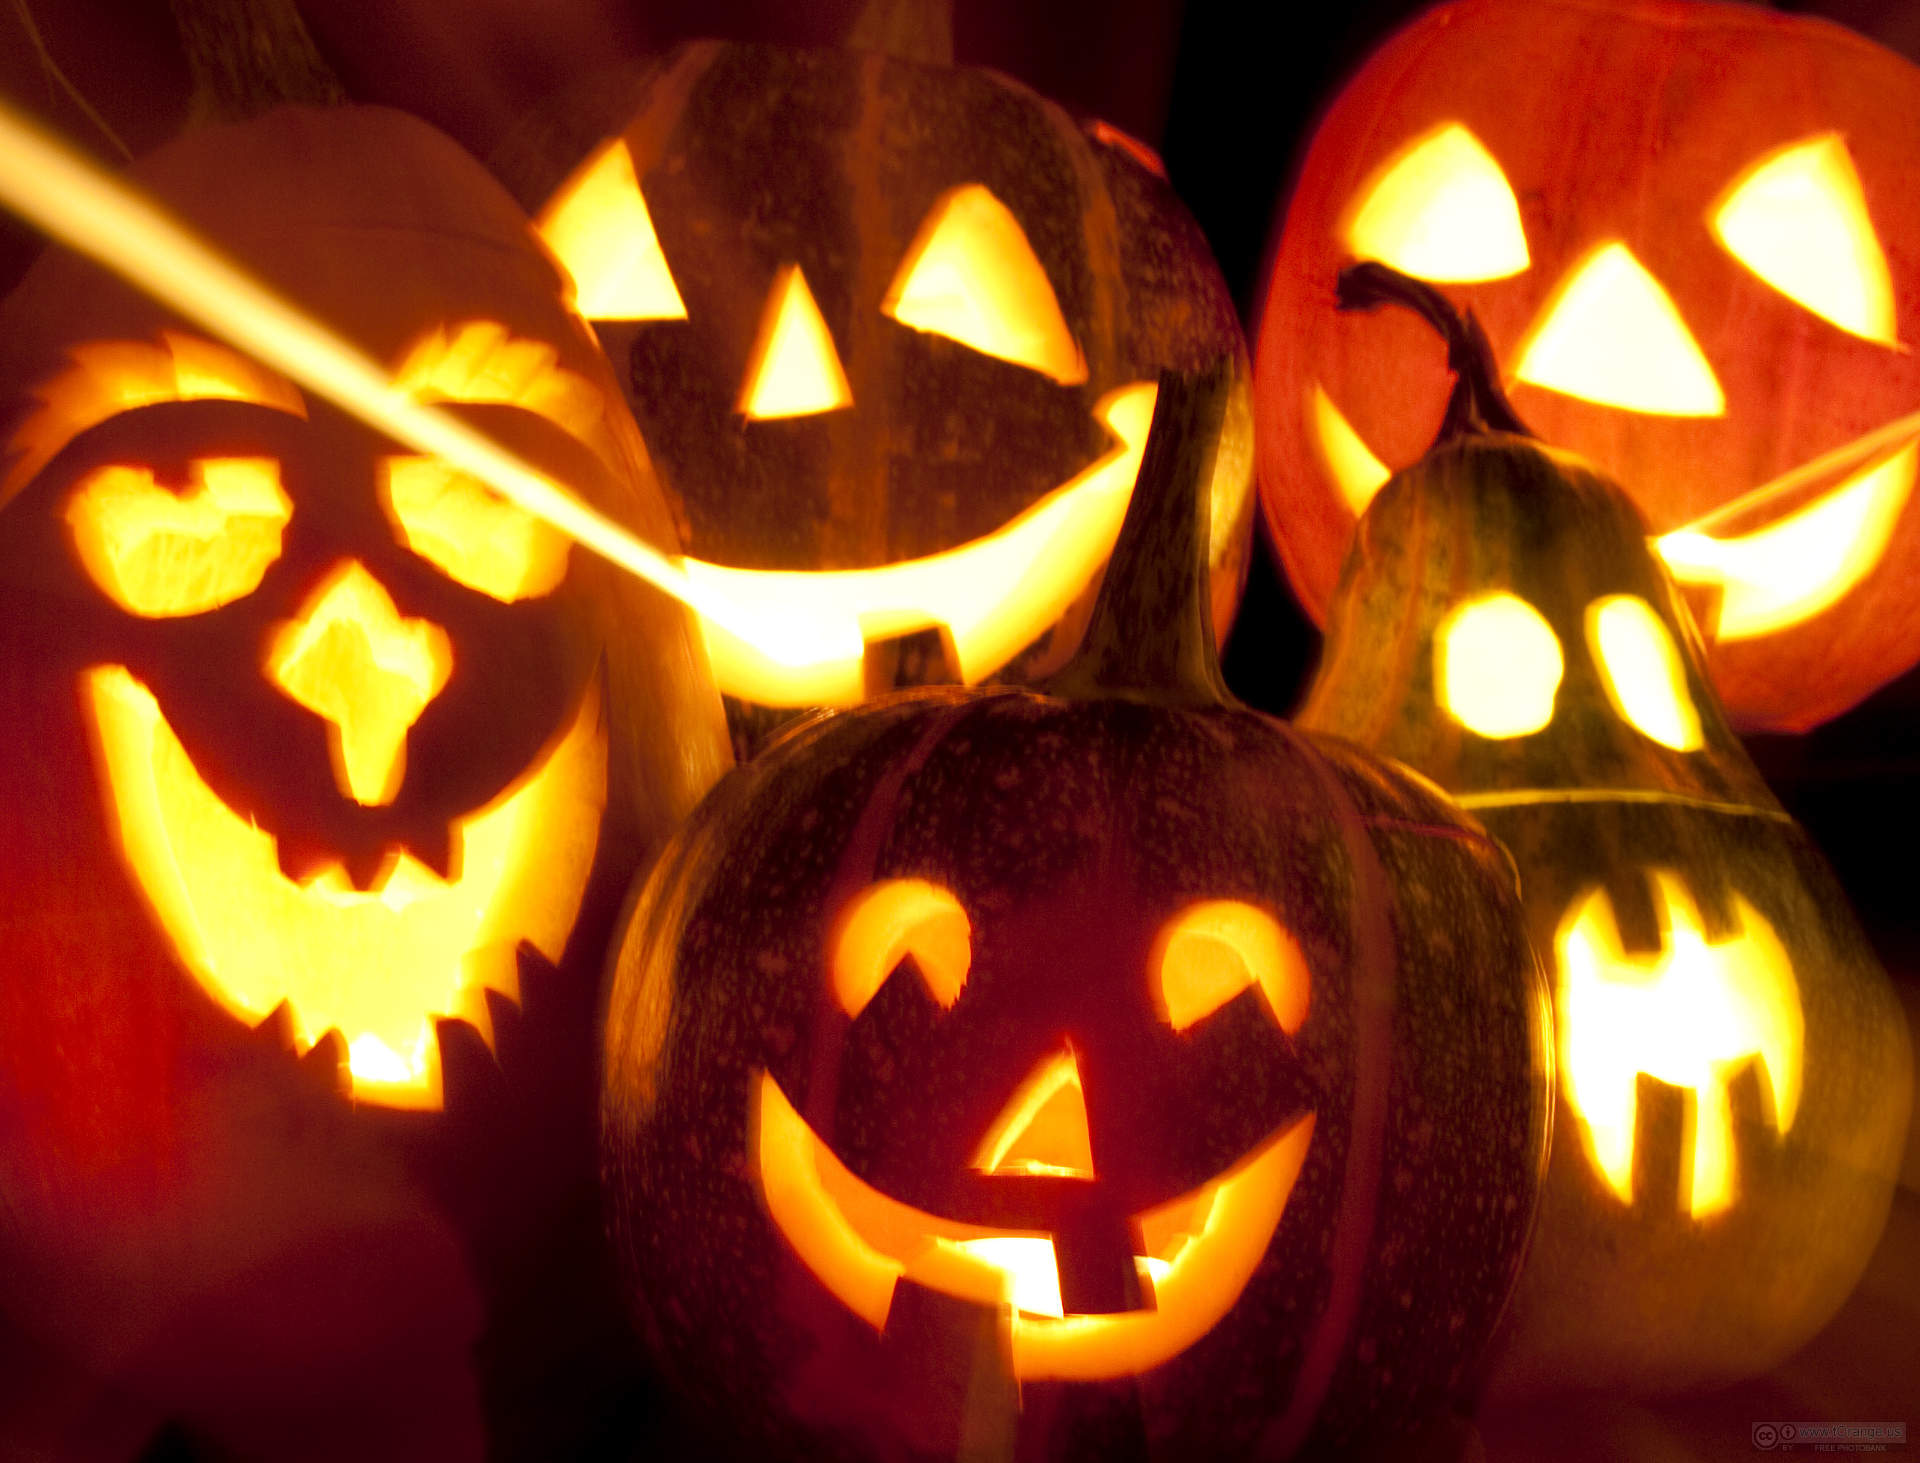 Halloween Events 2020 Houston Open Now Houston Halloween Events | Trick or Treating & Ghost Tours